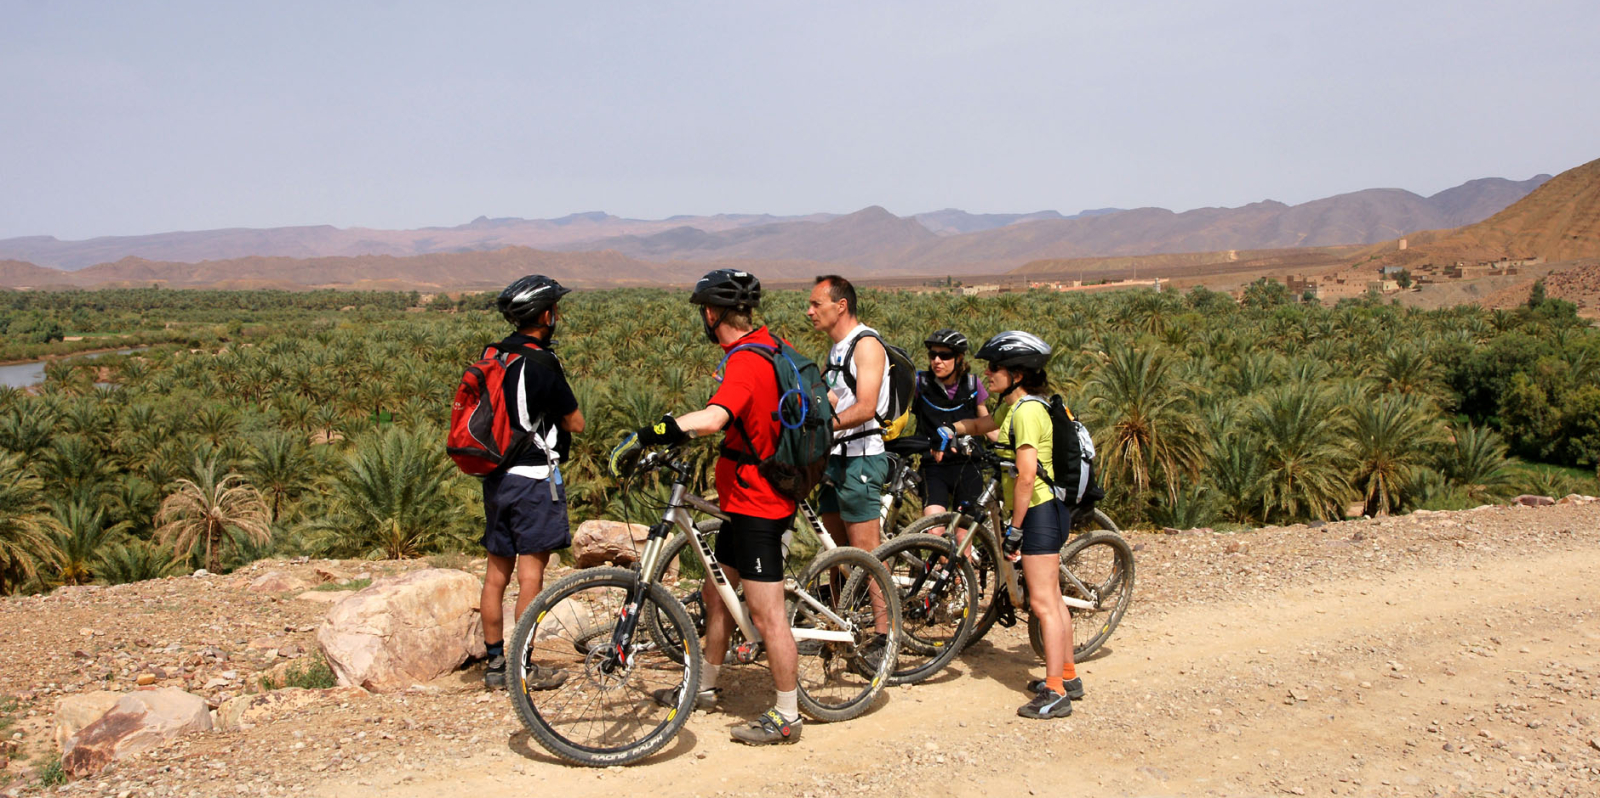 The South of Morocco, High Atlas and Valley of M'goun 8 days 7 nights mountains bike from Marrakech